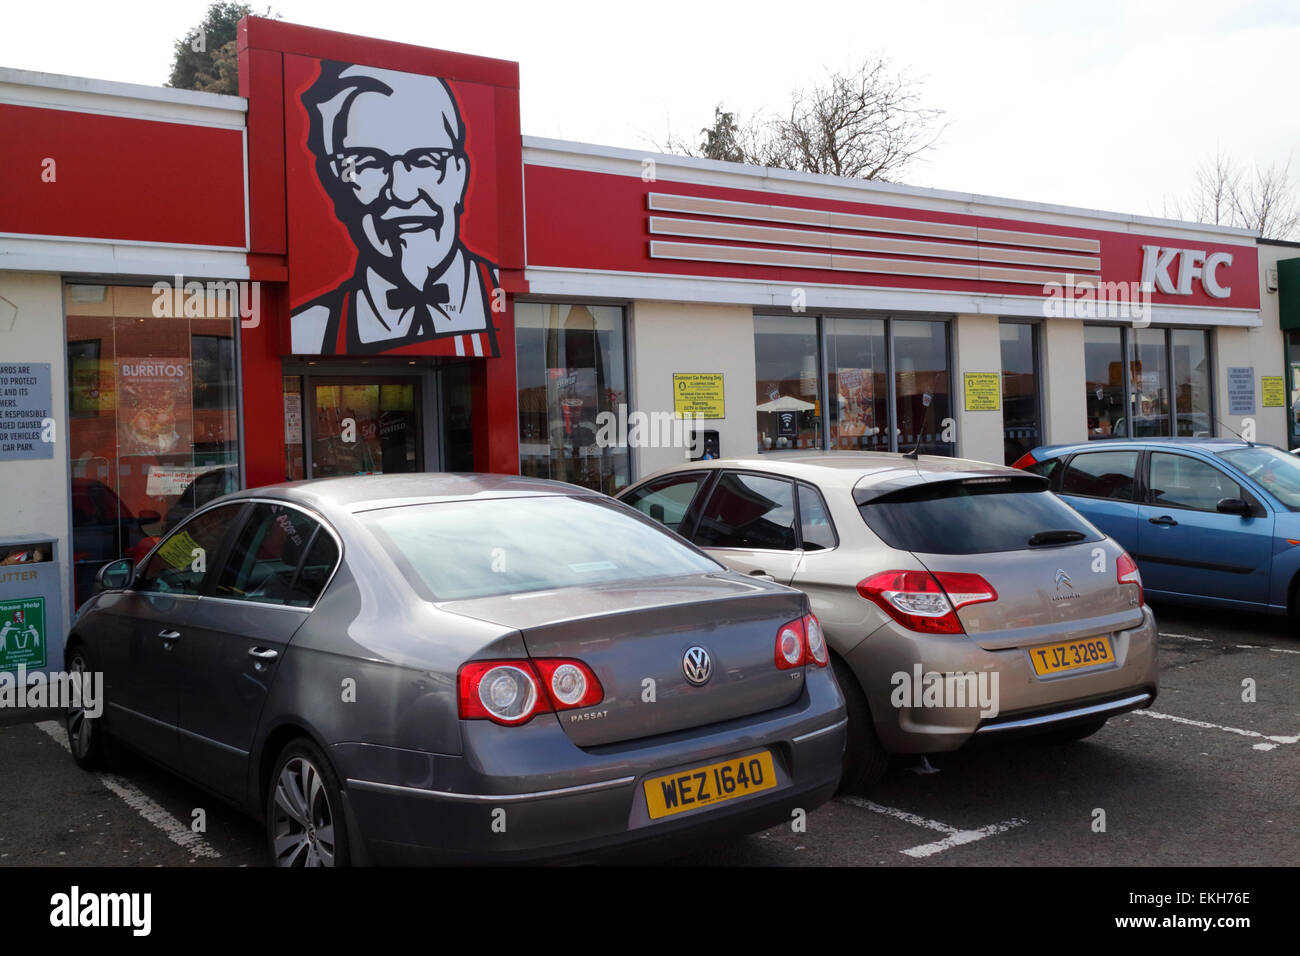 cars parked outside a busy kfc restaurant in the uk - Stock Image